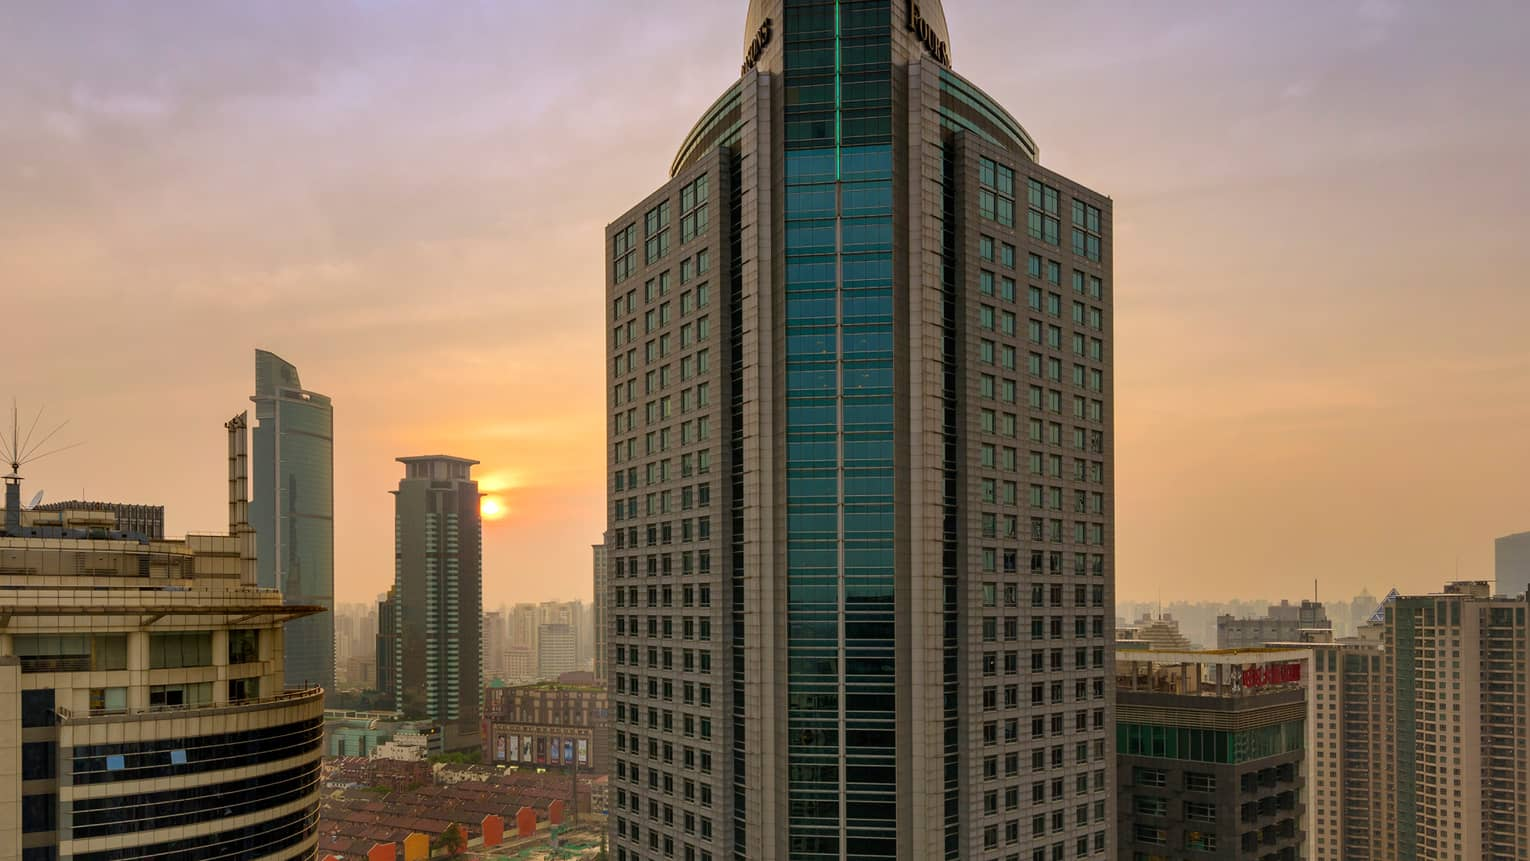 Exterior view of Four Seasons Hotel Shanghai rises 37-storey tower at sunrise